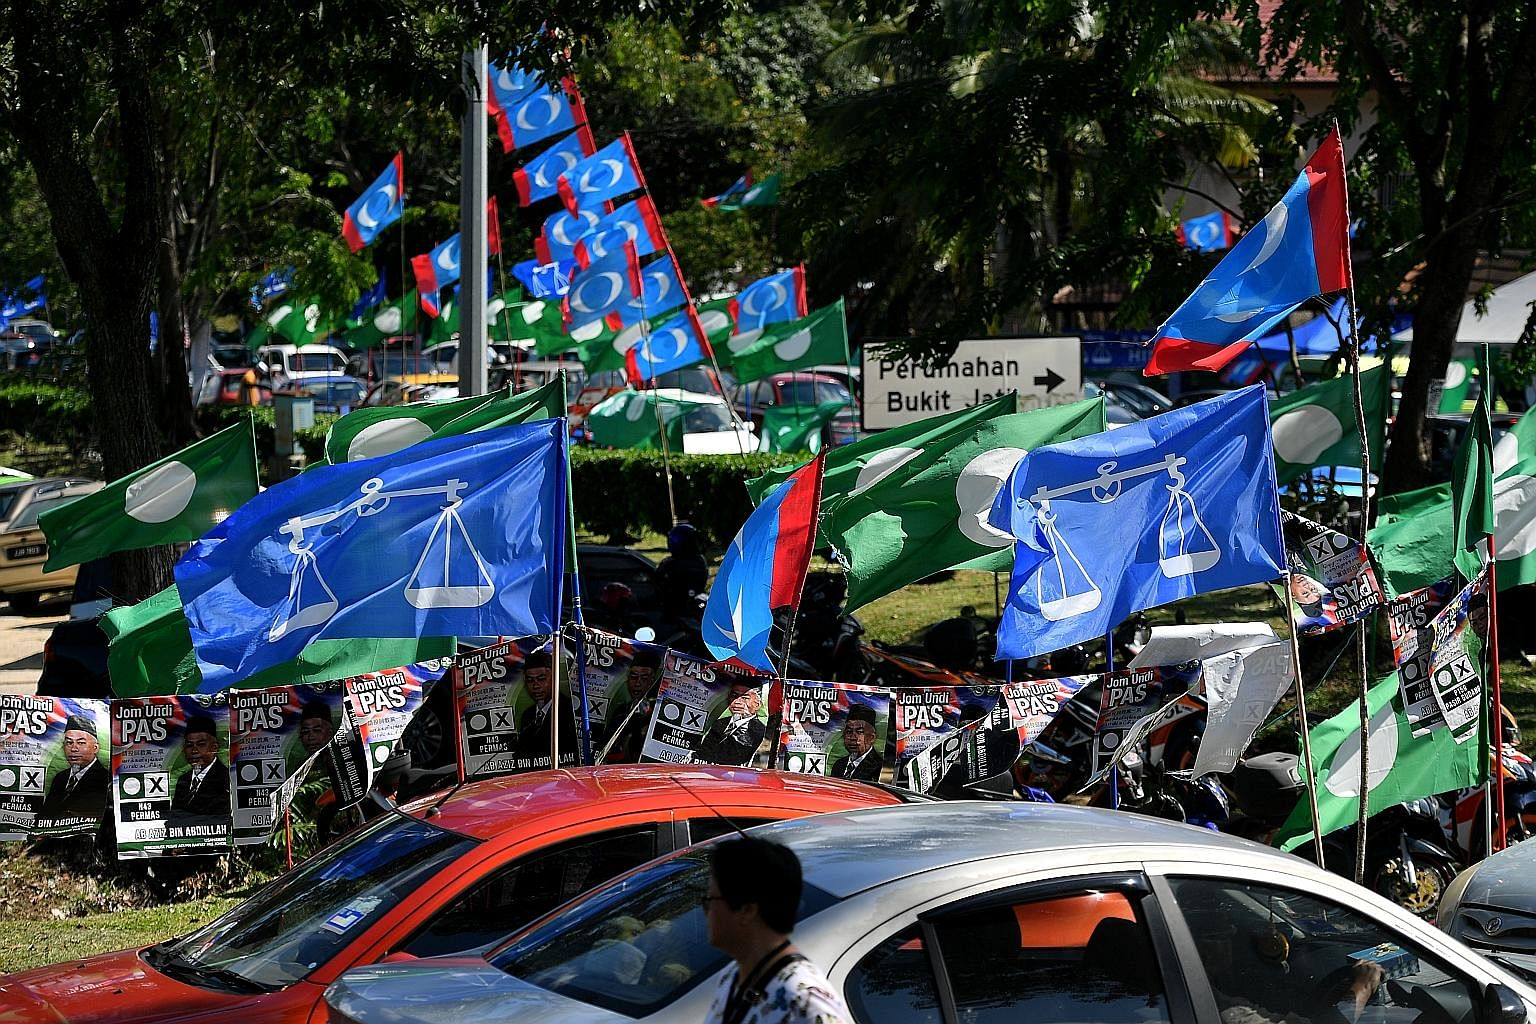 Political flags and banners in Johor on polling day for Malaysia's 14th general election last year, from which Pakatan Harapan emerged victorious. Pakatan is now worried about an alliance between Umno and PAS, as the two parties hold sway over the Ma